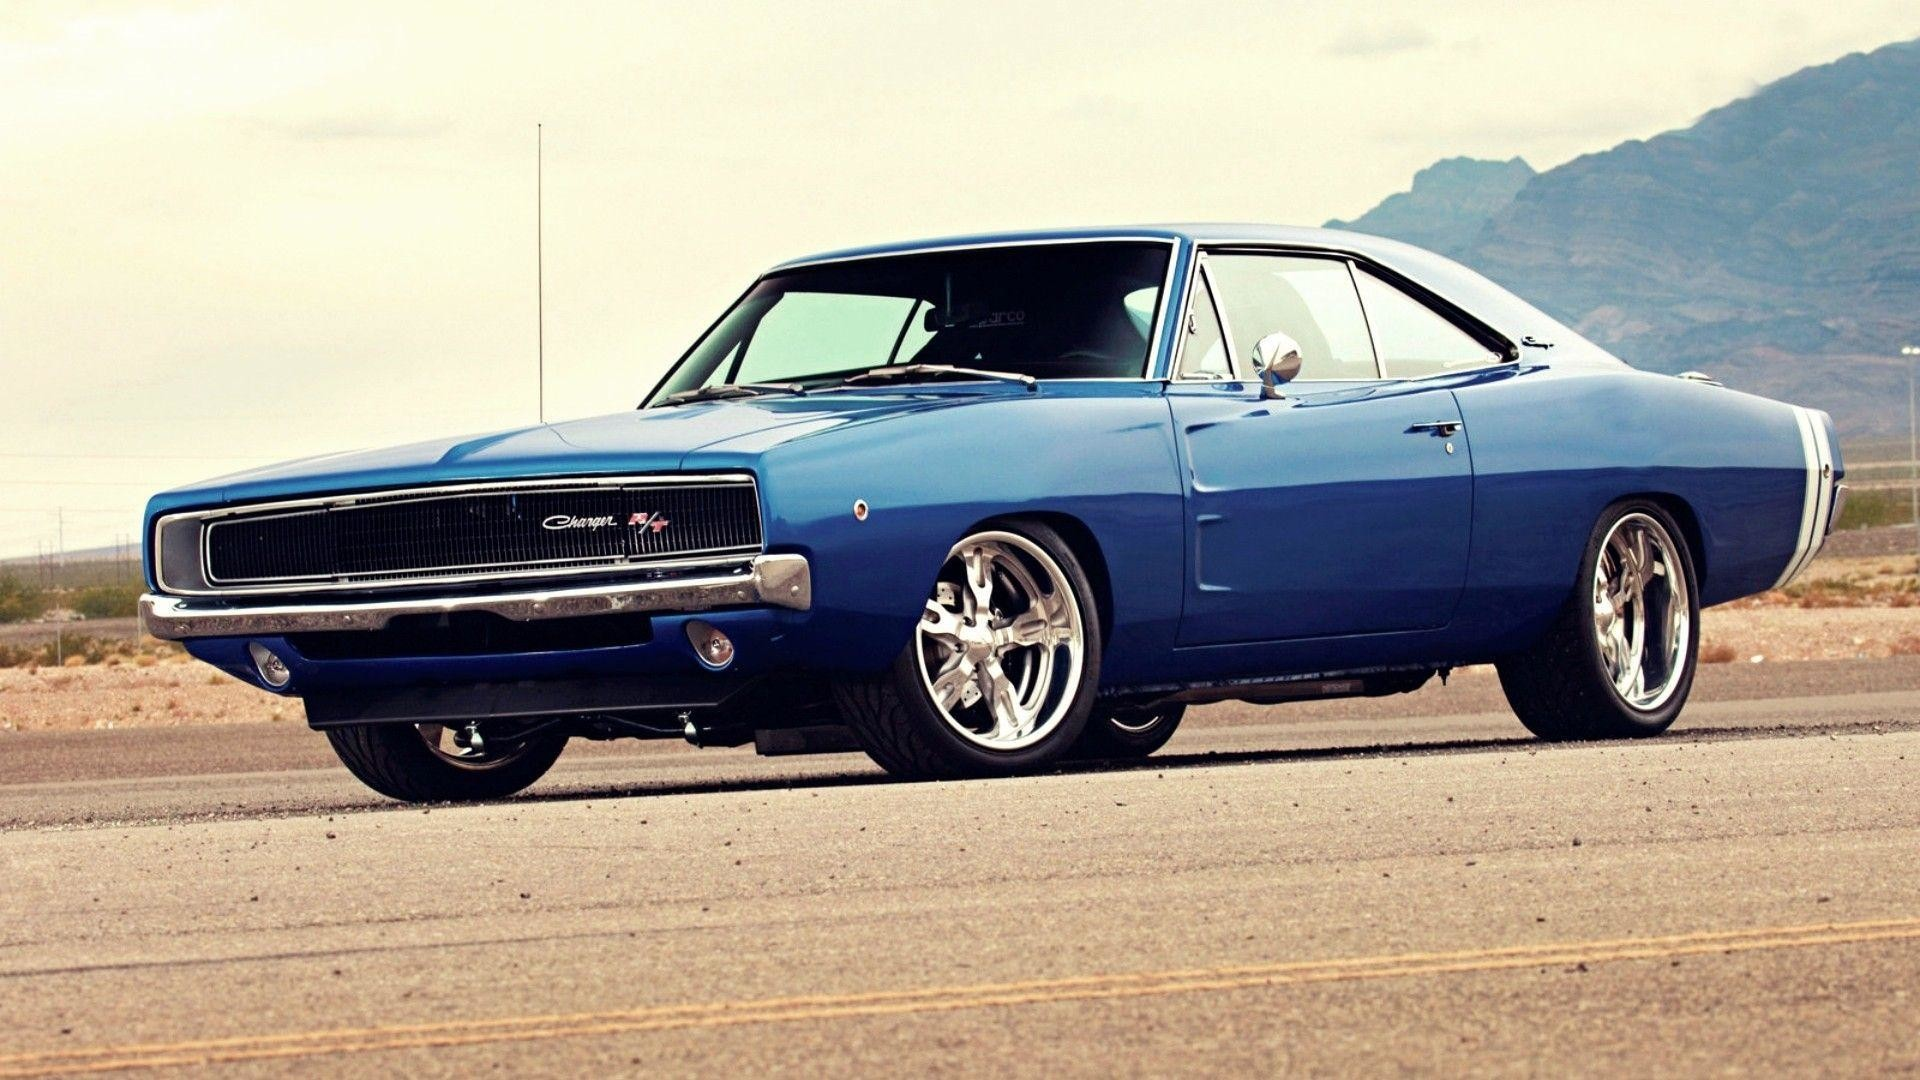 1970 Dodge Charger Wallpaper Car Pictures